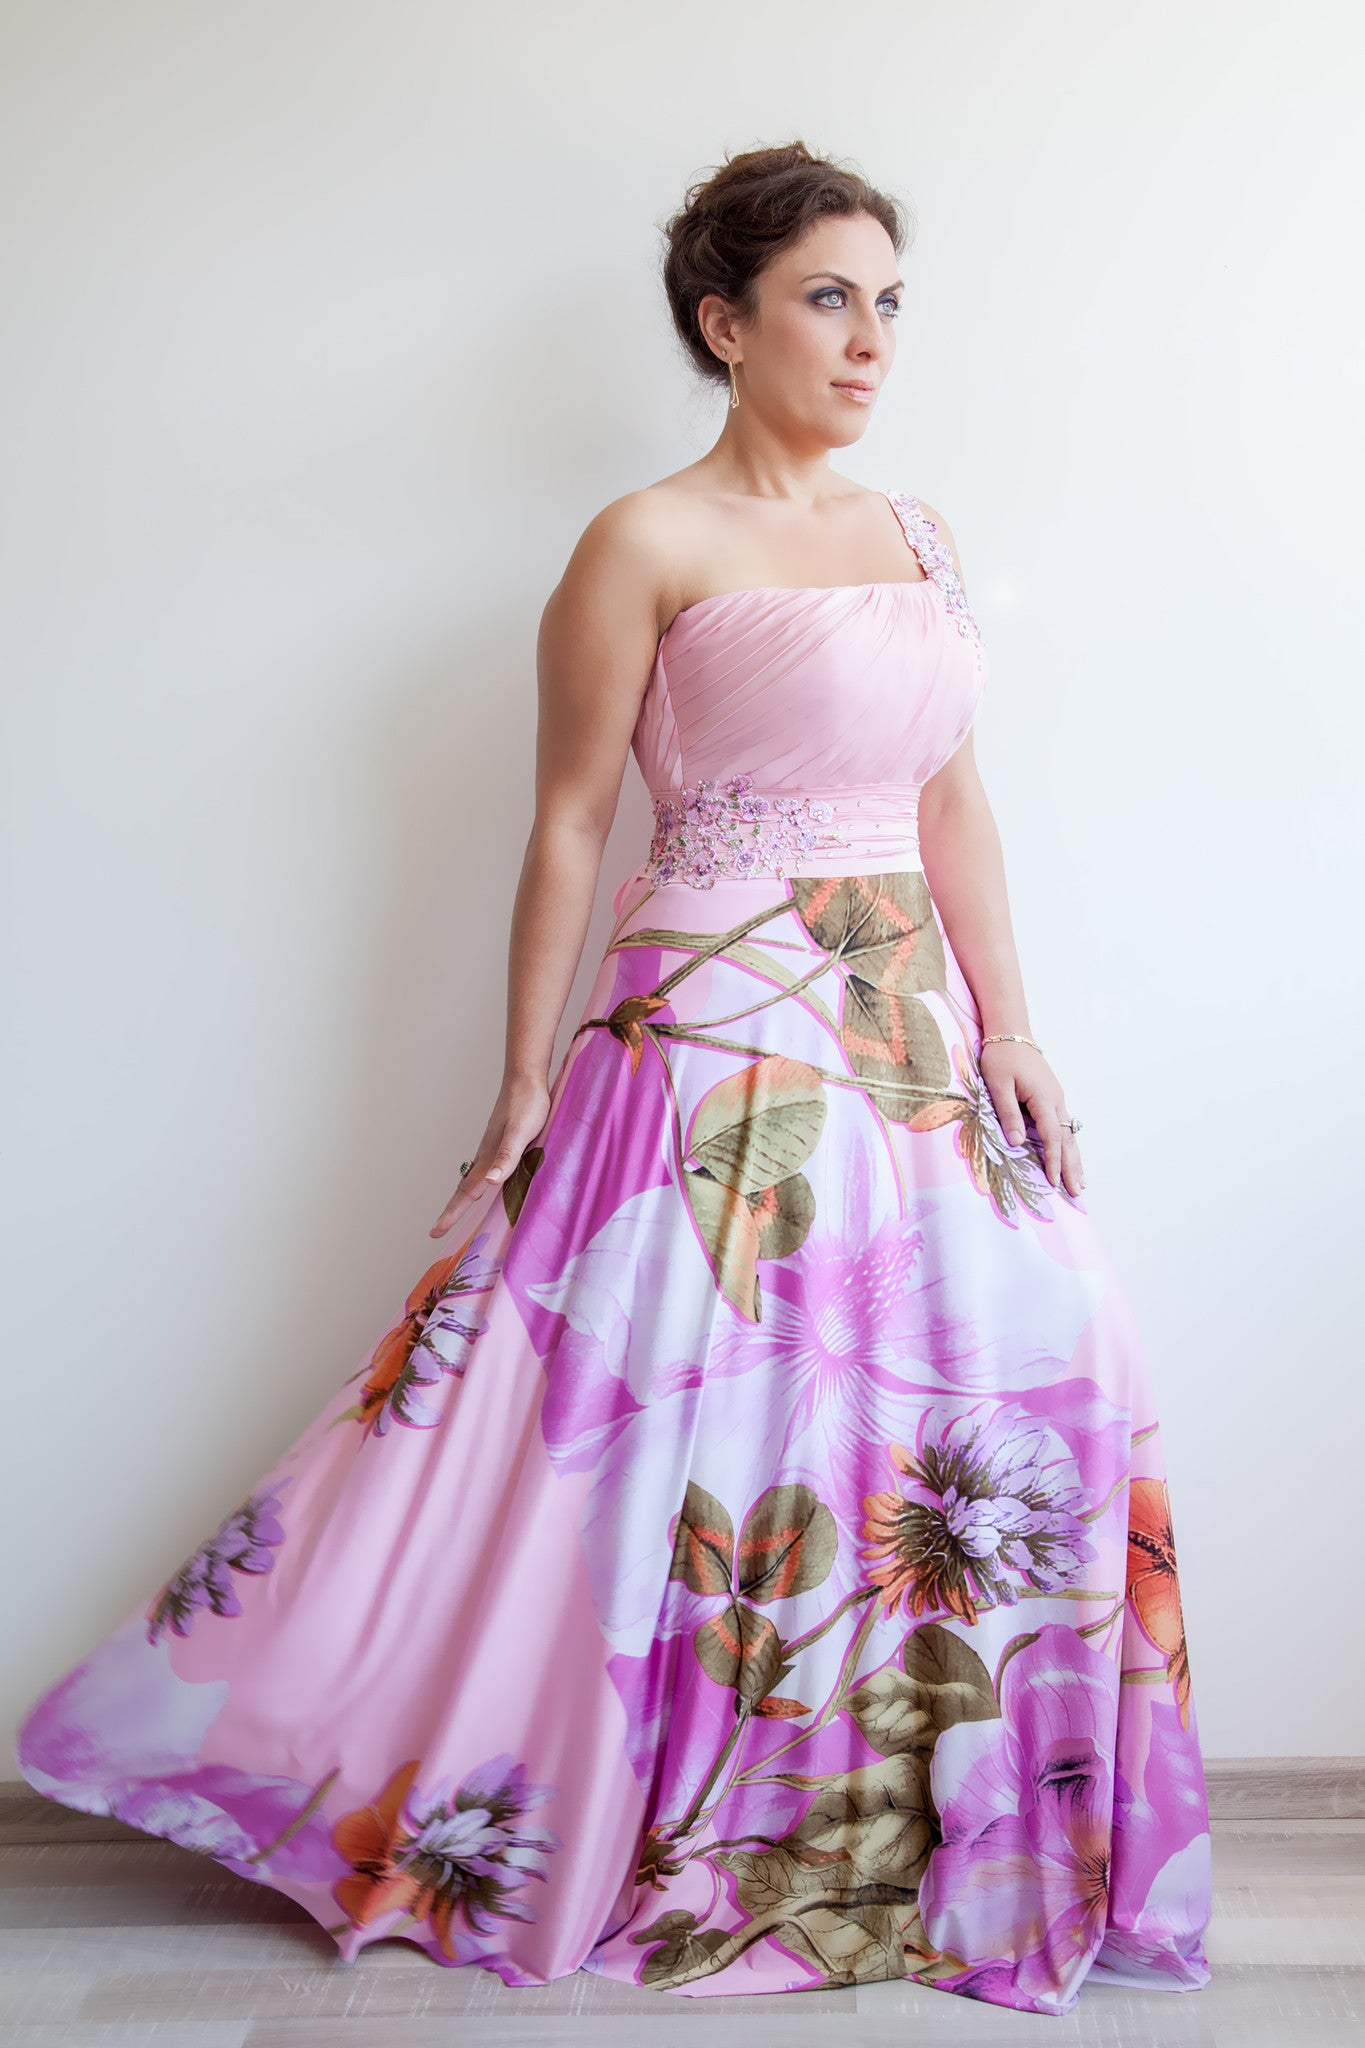 Pattern: Plus Size Dress with a Strap